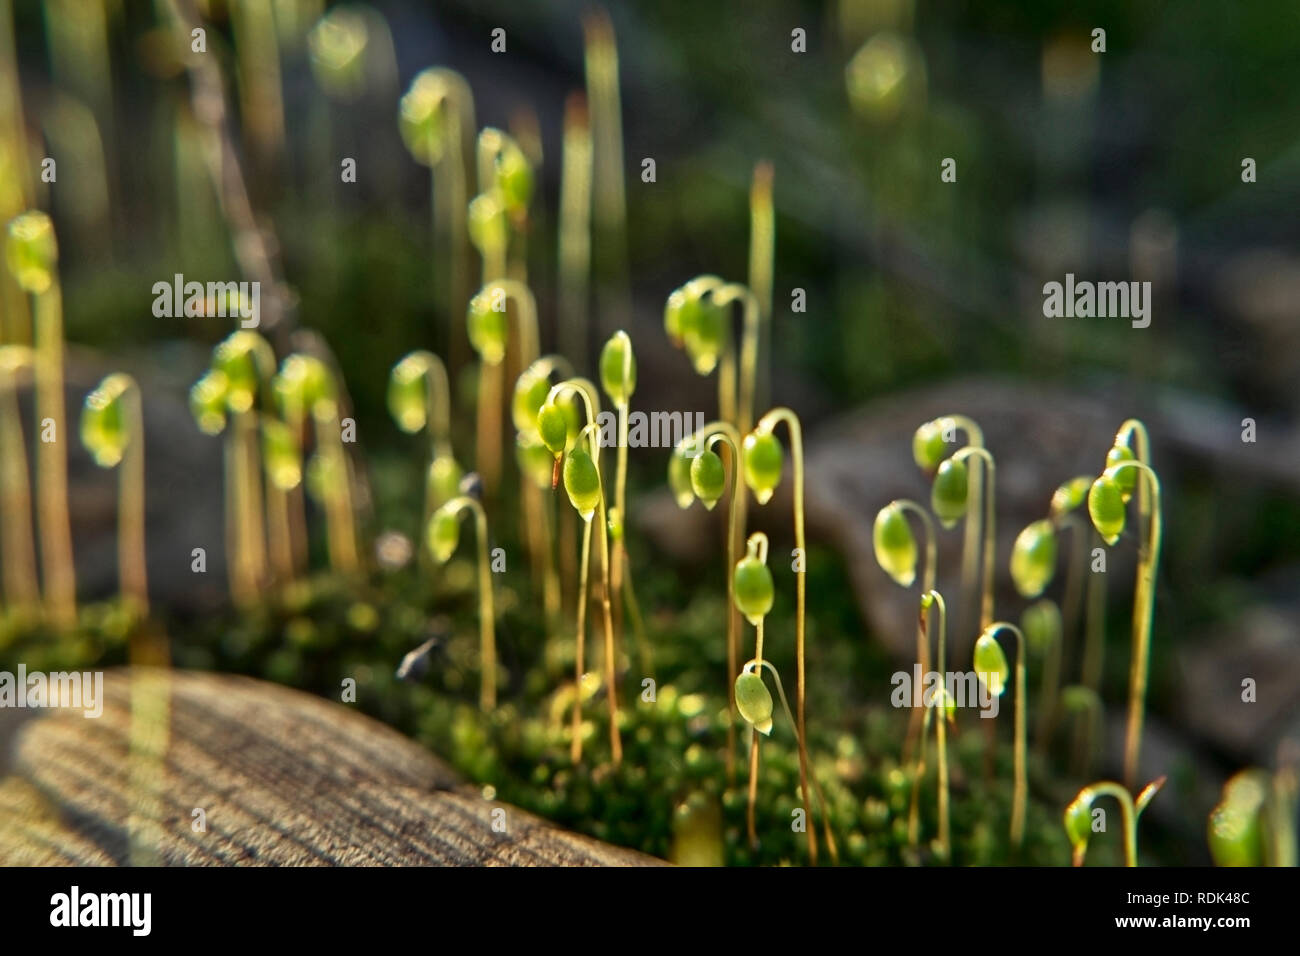 The sun shines through the small grasses on the moss on the stone railway embankment - Stock Image